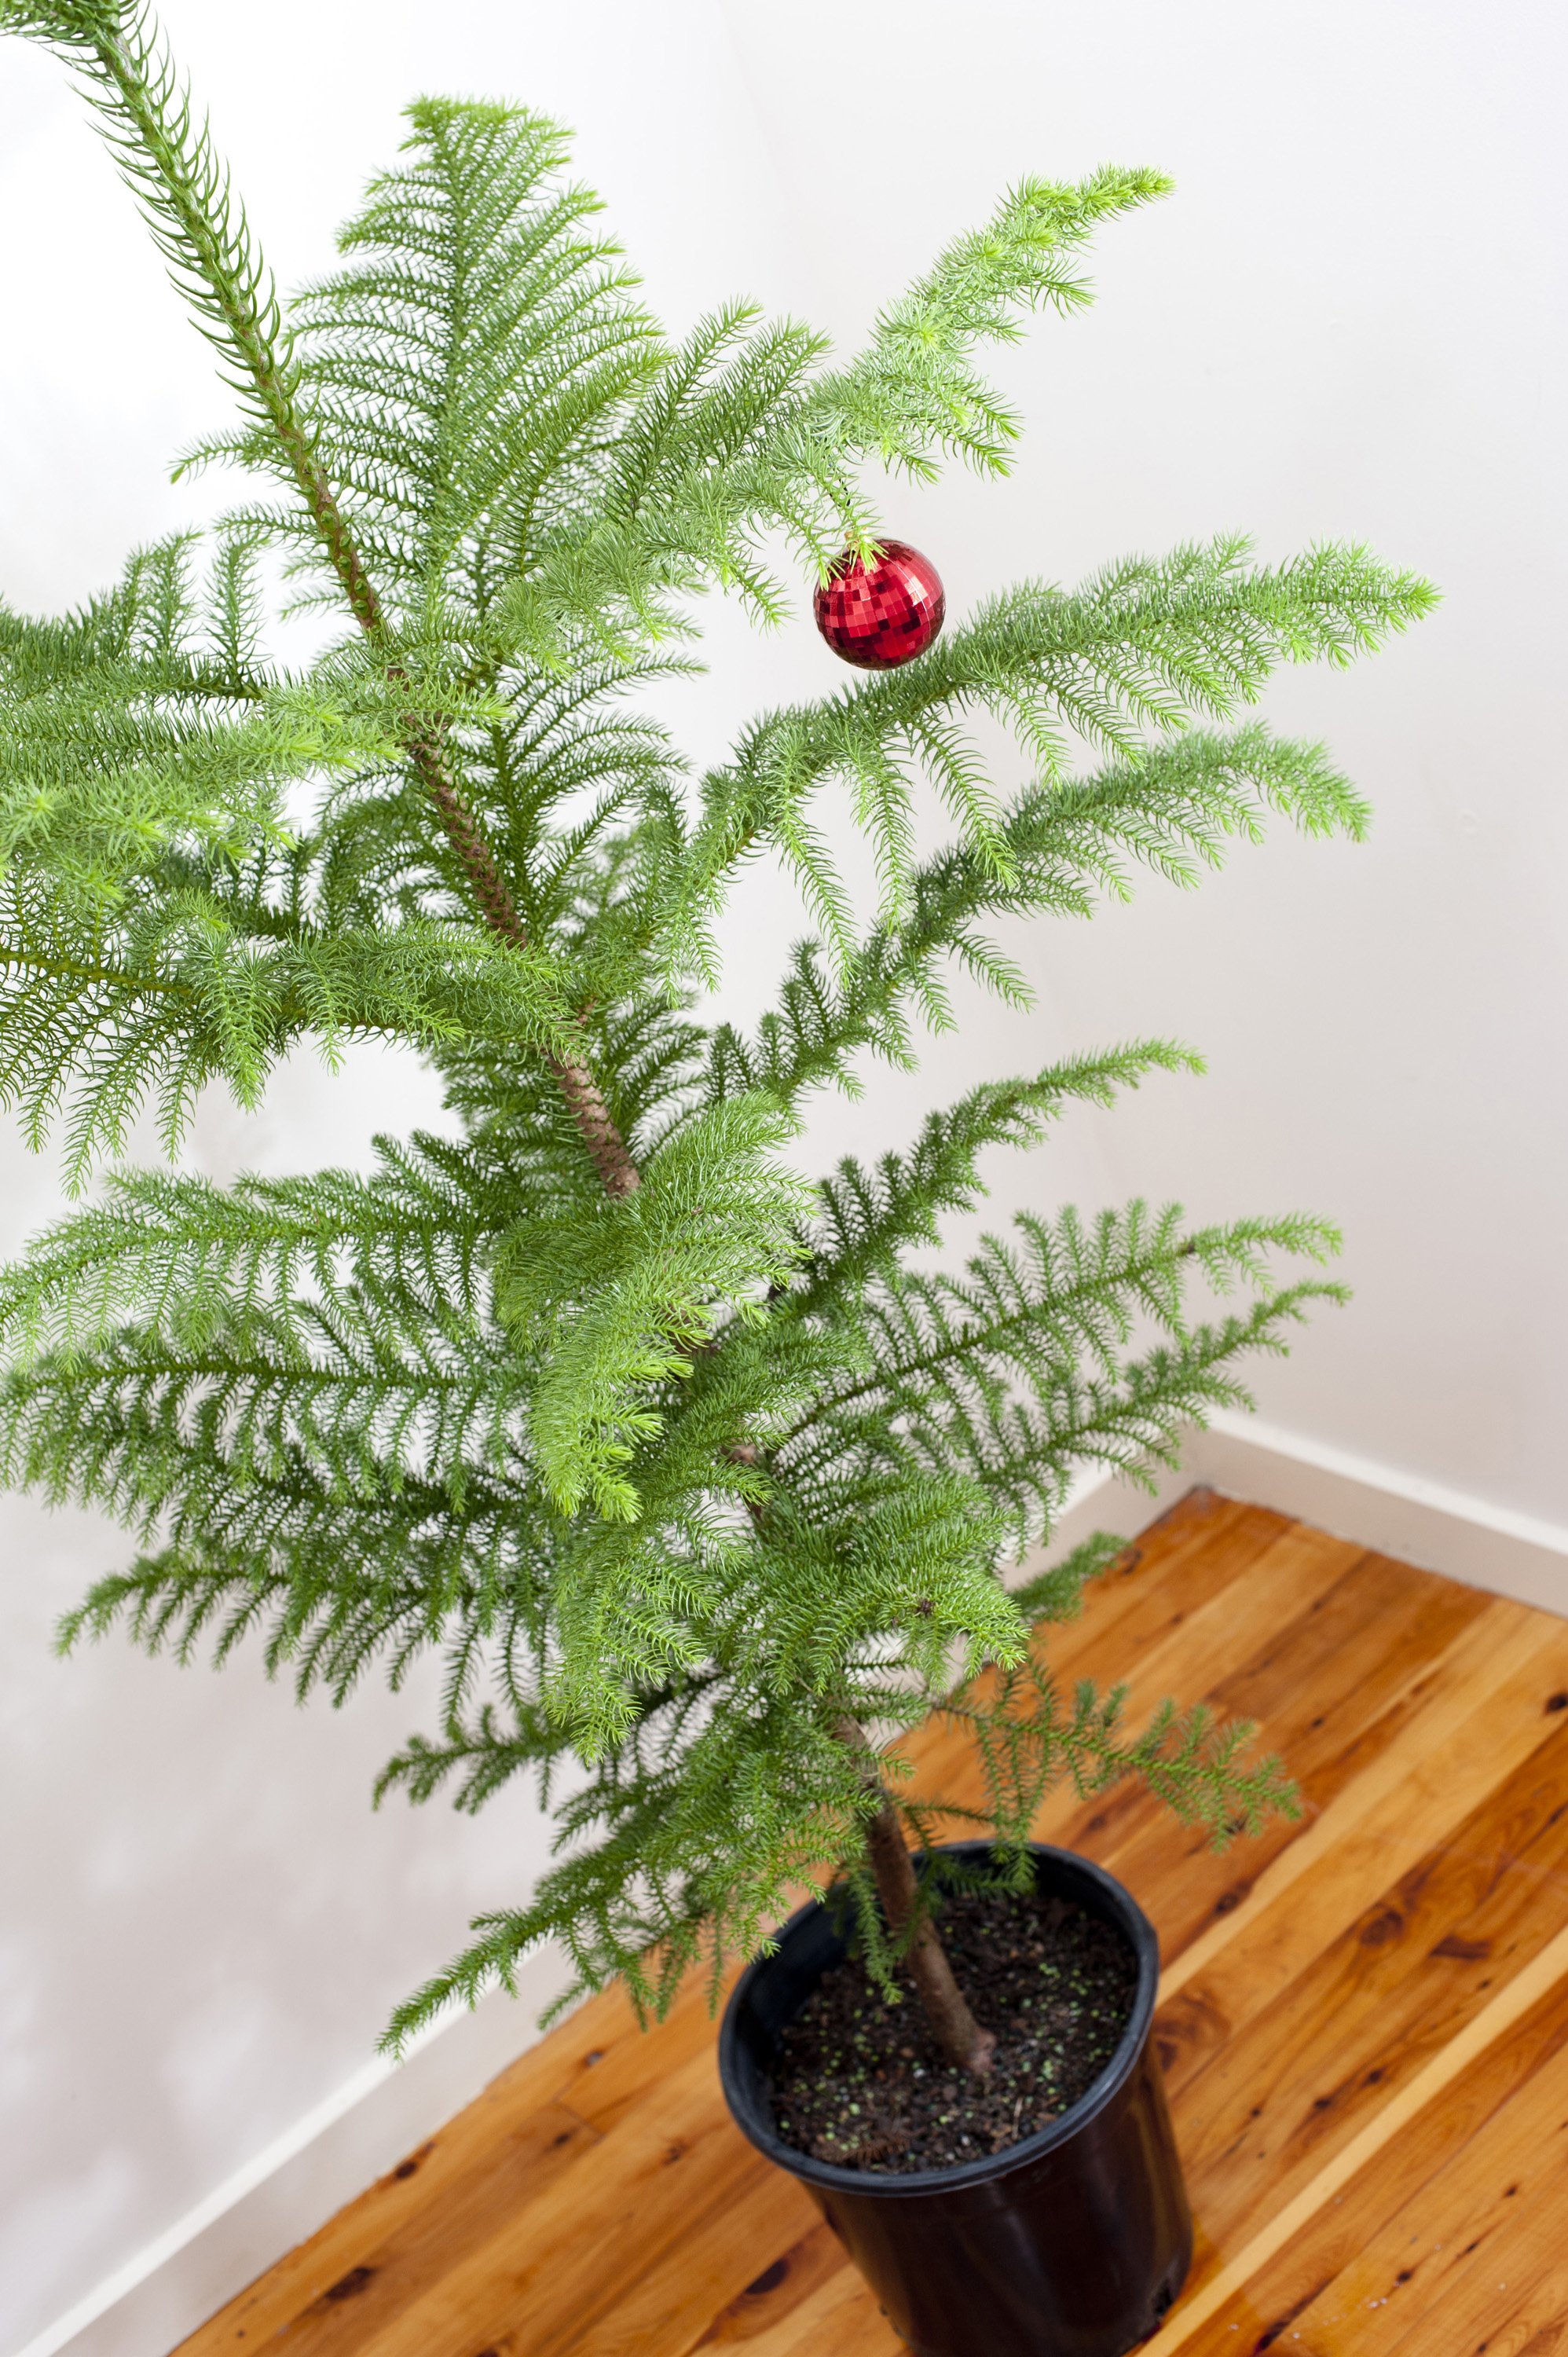 Sparsely decorated Christmas tree with a single red bauble decoration hanging from its branches, high angle view of a natural evergreen potted pine